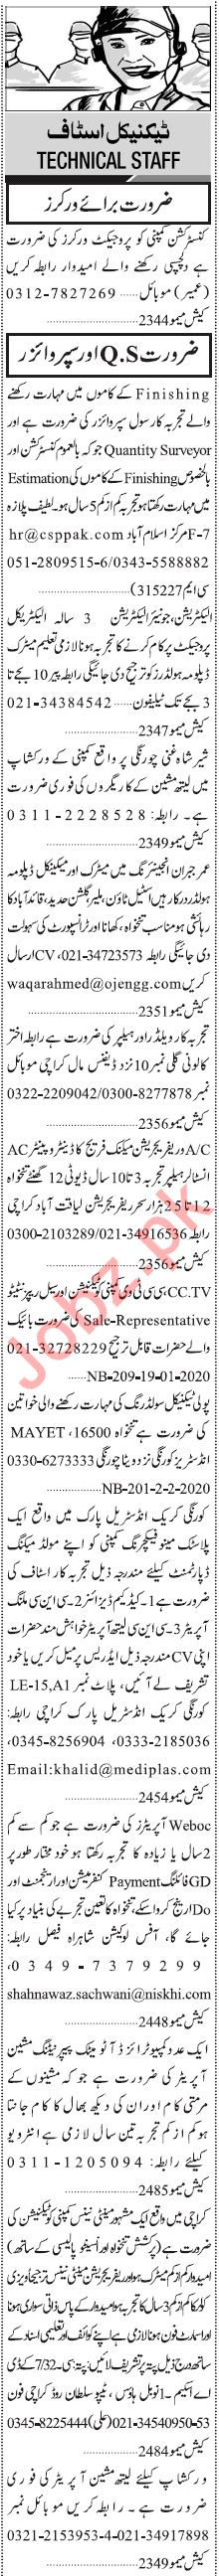 Jang Sunday Classified Ads 2nd Feb 2020 for Technical Staff